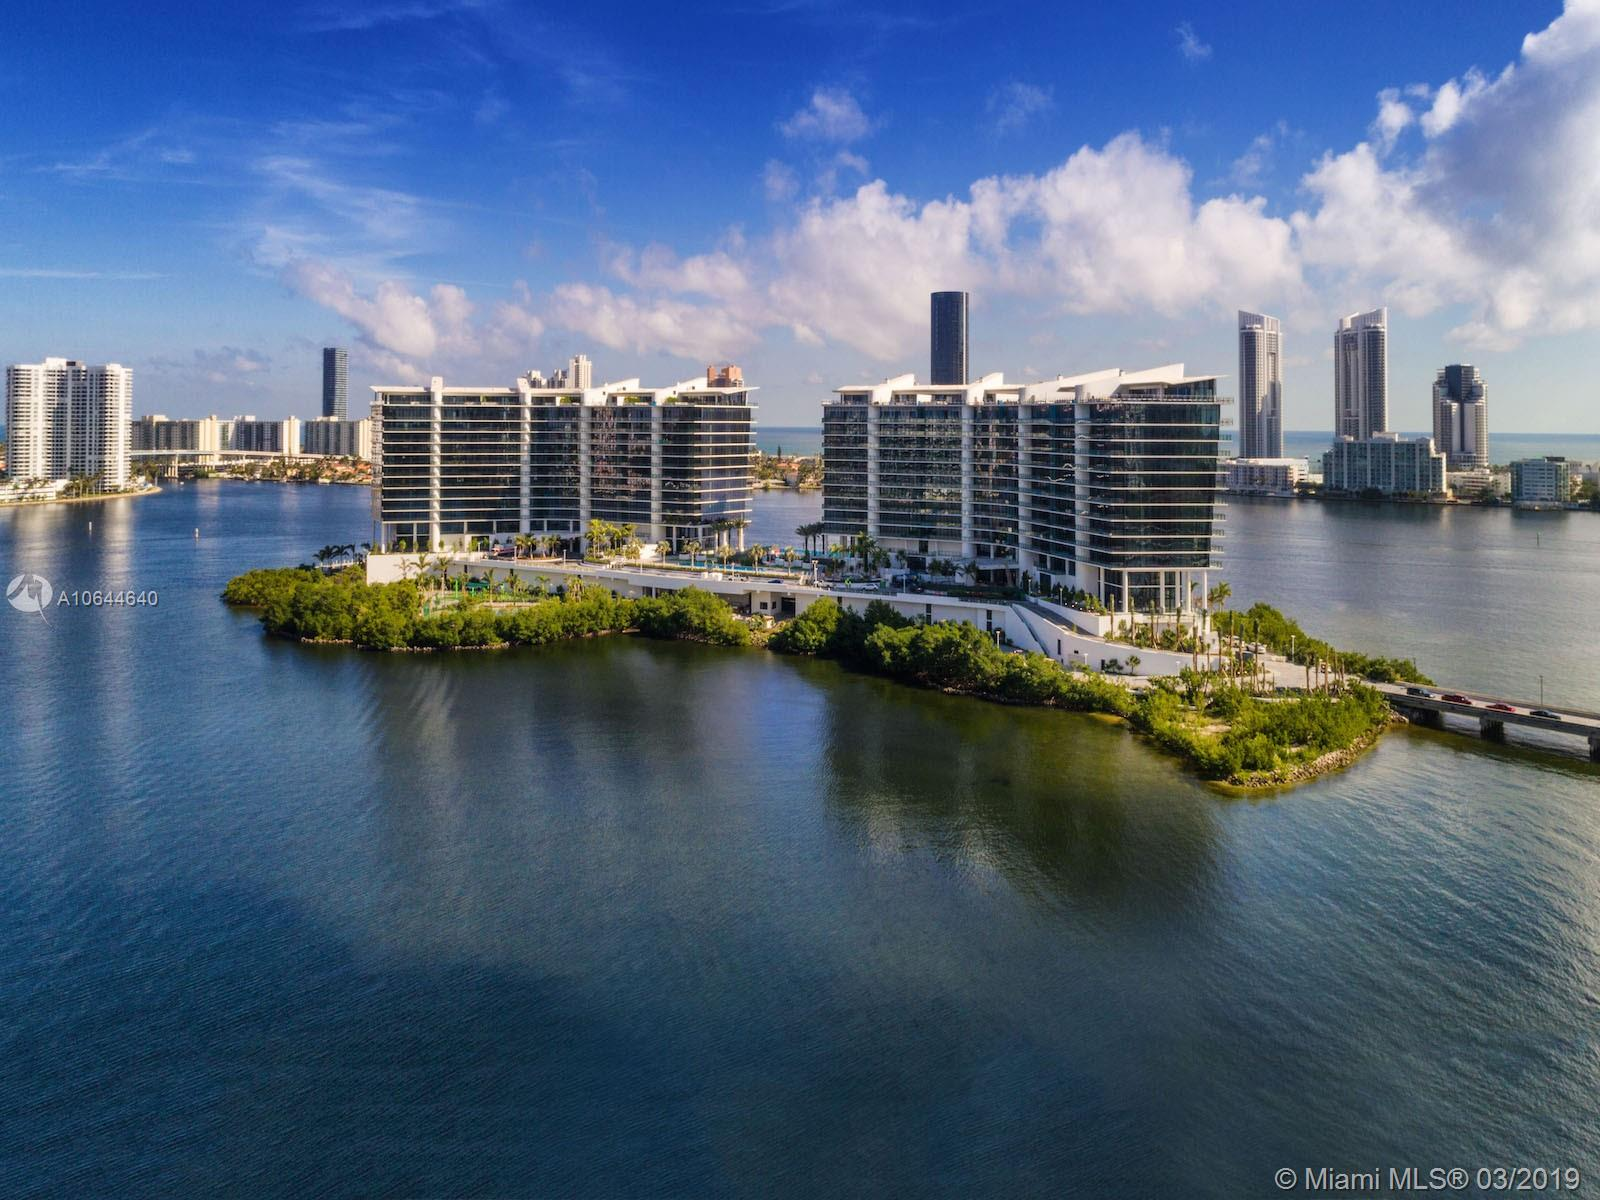 Superb Penthouse 7 is fabulously positioned in the north tower of Prive Island with sweeping and unobstructed views of the ocean and intracoastal, ideal for stunning sunrise to sunset views. It's one of the few ultra exclusive Penthouse residences with 5 spacious bedrooms and 6.5 bathrooms. This apartment integrates seamlessly the outdoors into the residence, offering over 4,000 SqFt of terraces, with a 24 x 10 rooftop pool and 2 summer grills on both outdoor balcony levels. Two opulent levels expanding over 10,000 sq ft with soaring ceilings reaching 17 feet. Prive Island is a full service building offering a very upscale lifestyle with five-star concierge service and a marina for yachts up to 150 foot and much more. A Must See! Easy to Show!